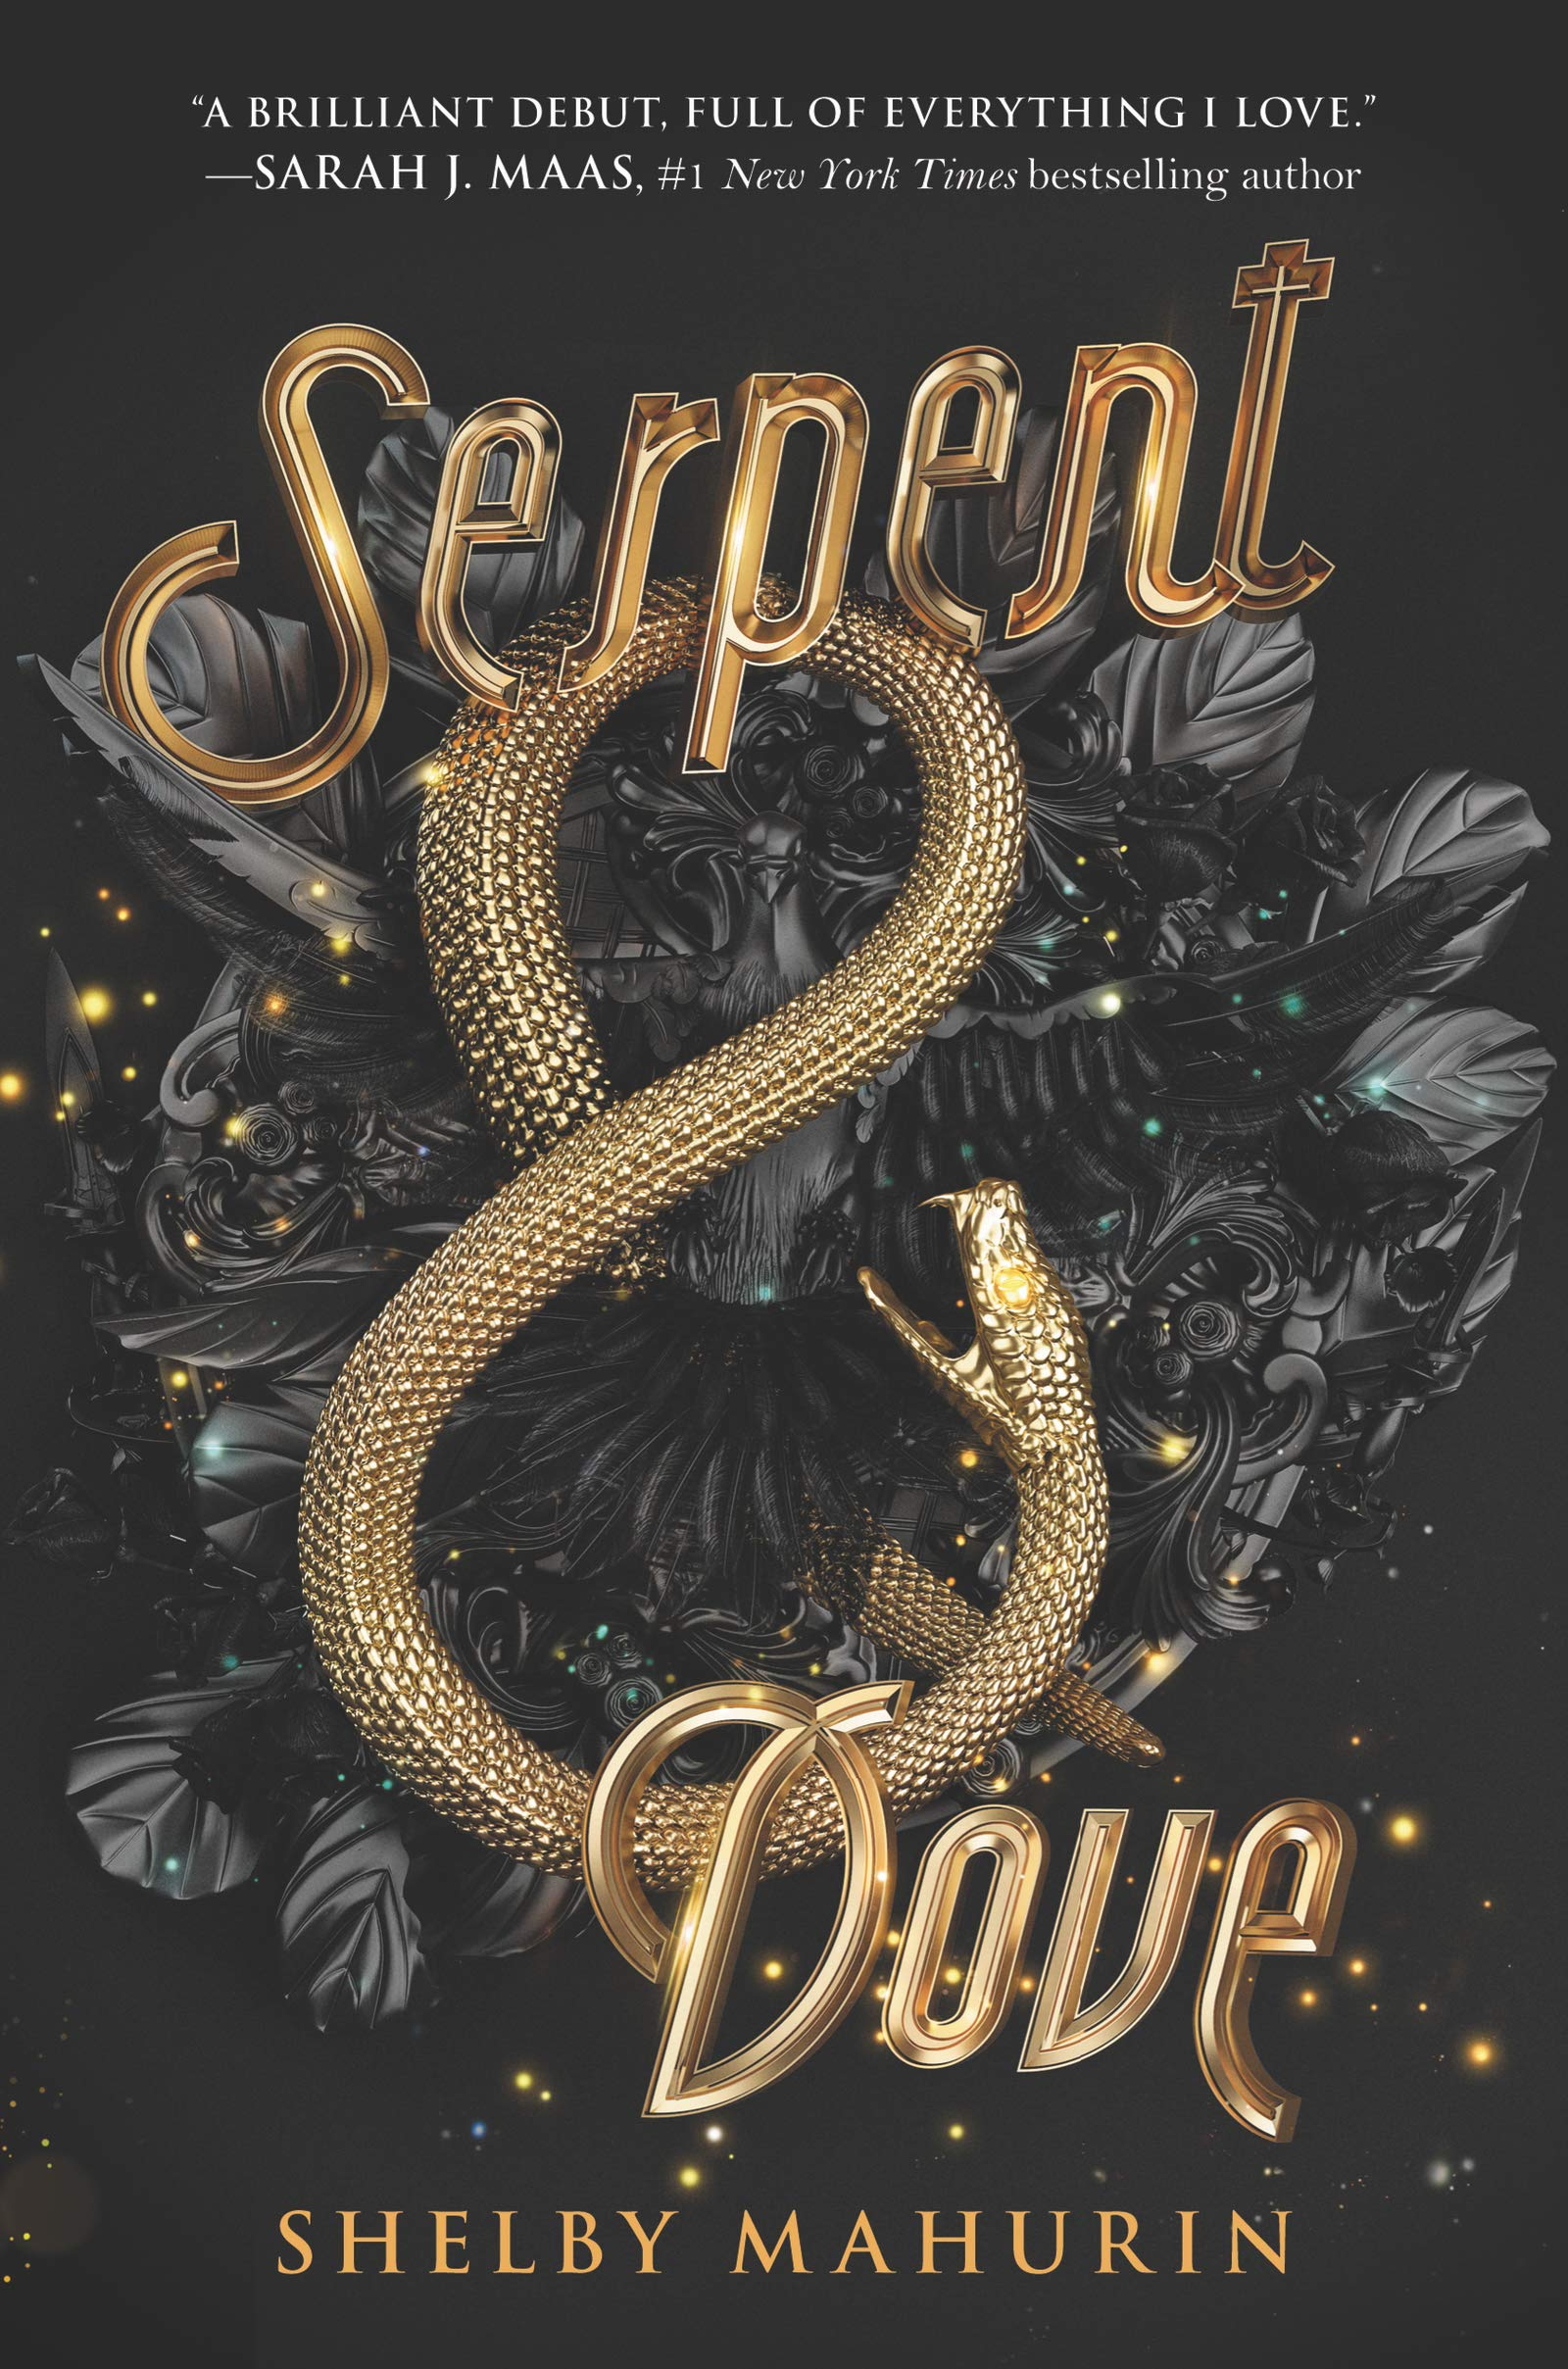 Image result for serpent and dove